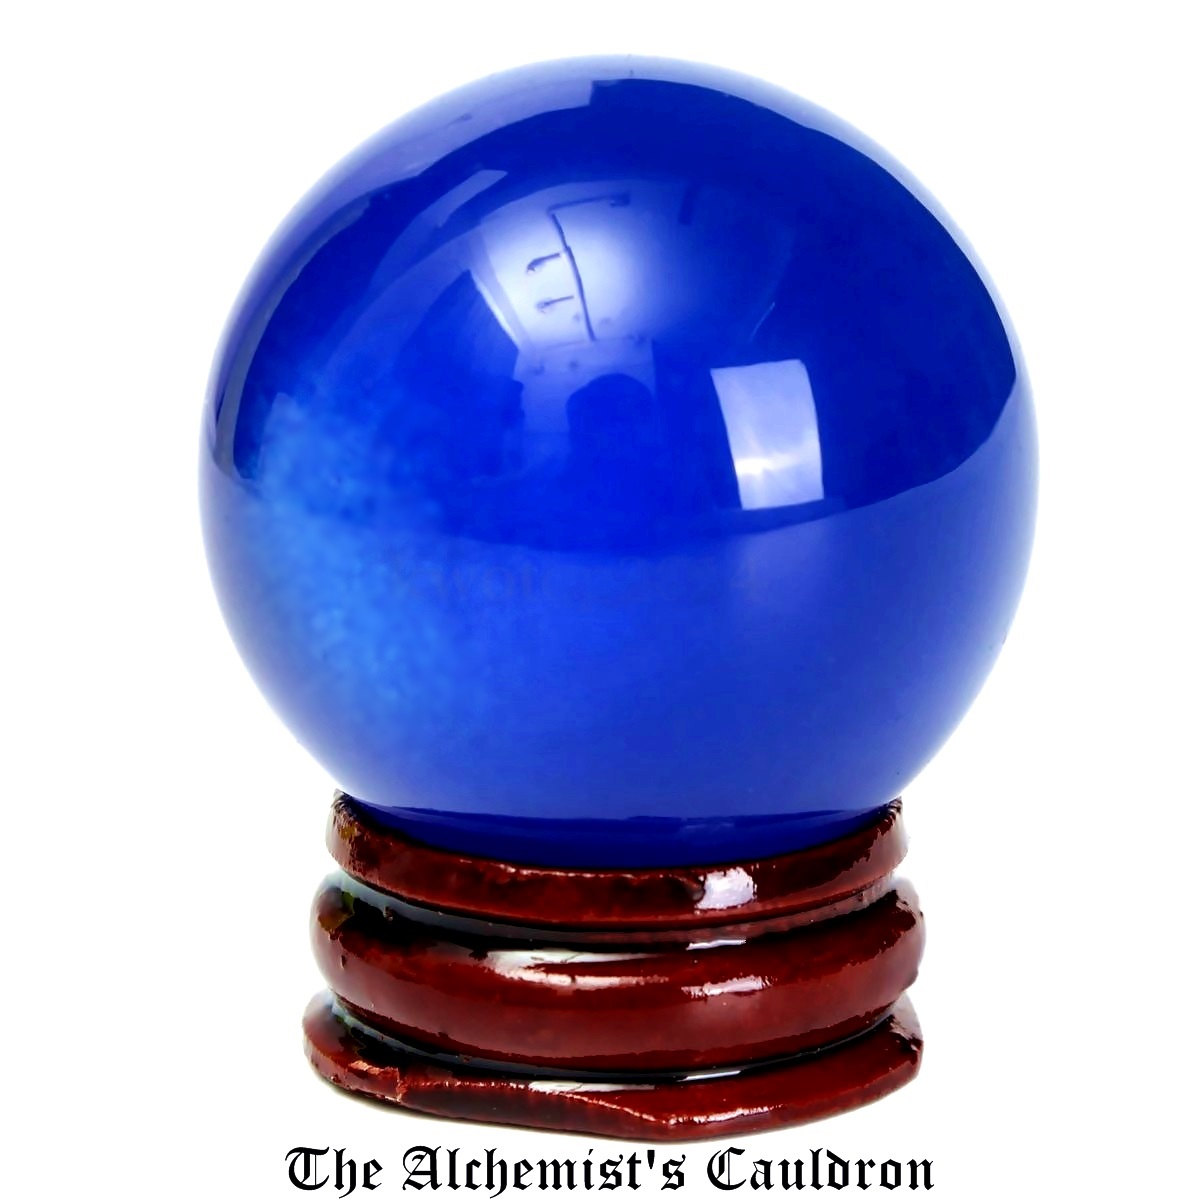 Crystal-Ball-Two-Inch-Blue-Glass-With-Stand-and-Box-at-Lucky-Mojo-Curio-Company